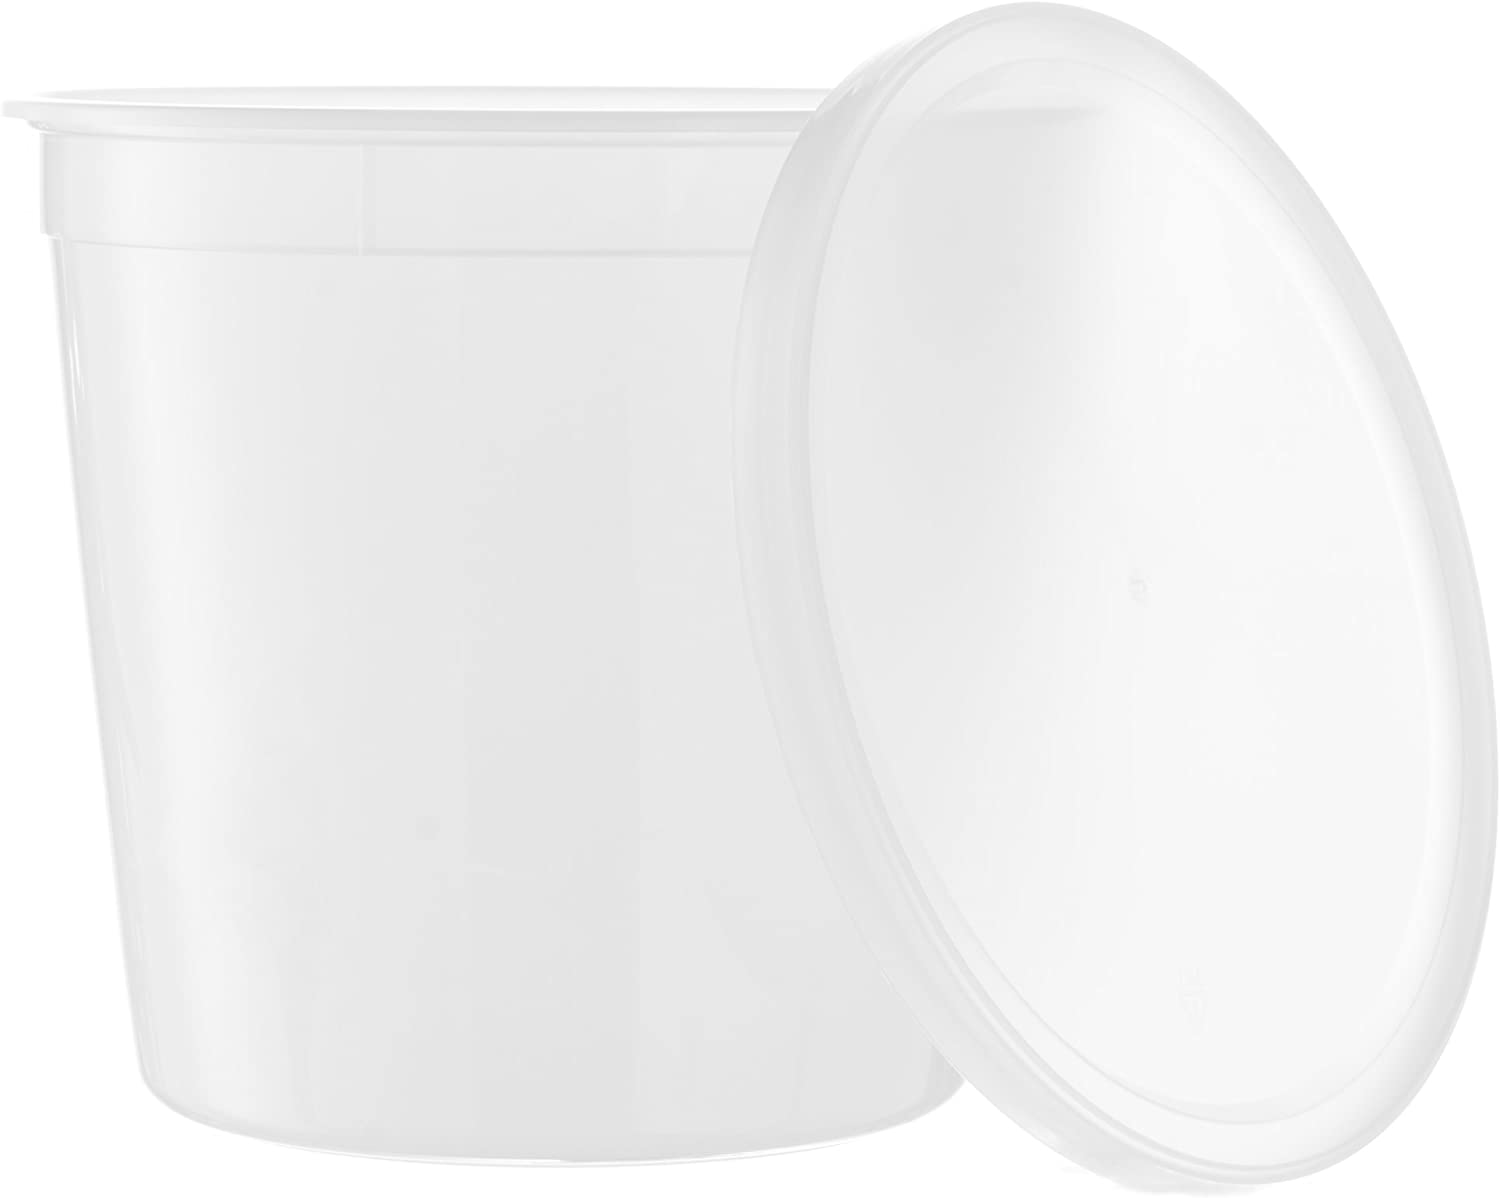 Basix Round Clear 168-Ounce Food Storage Container with Lids, 10 Count